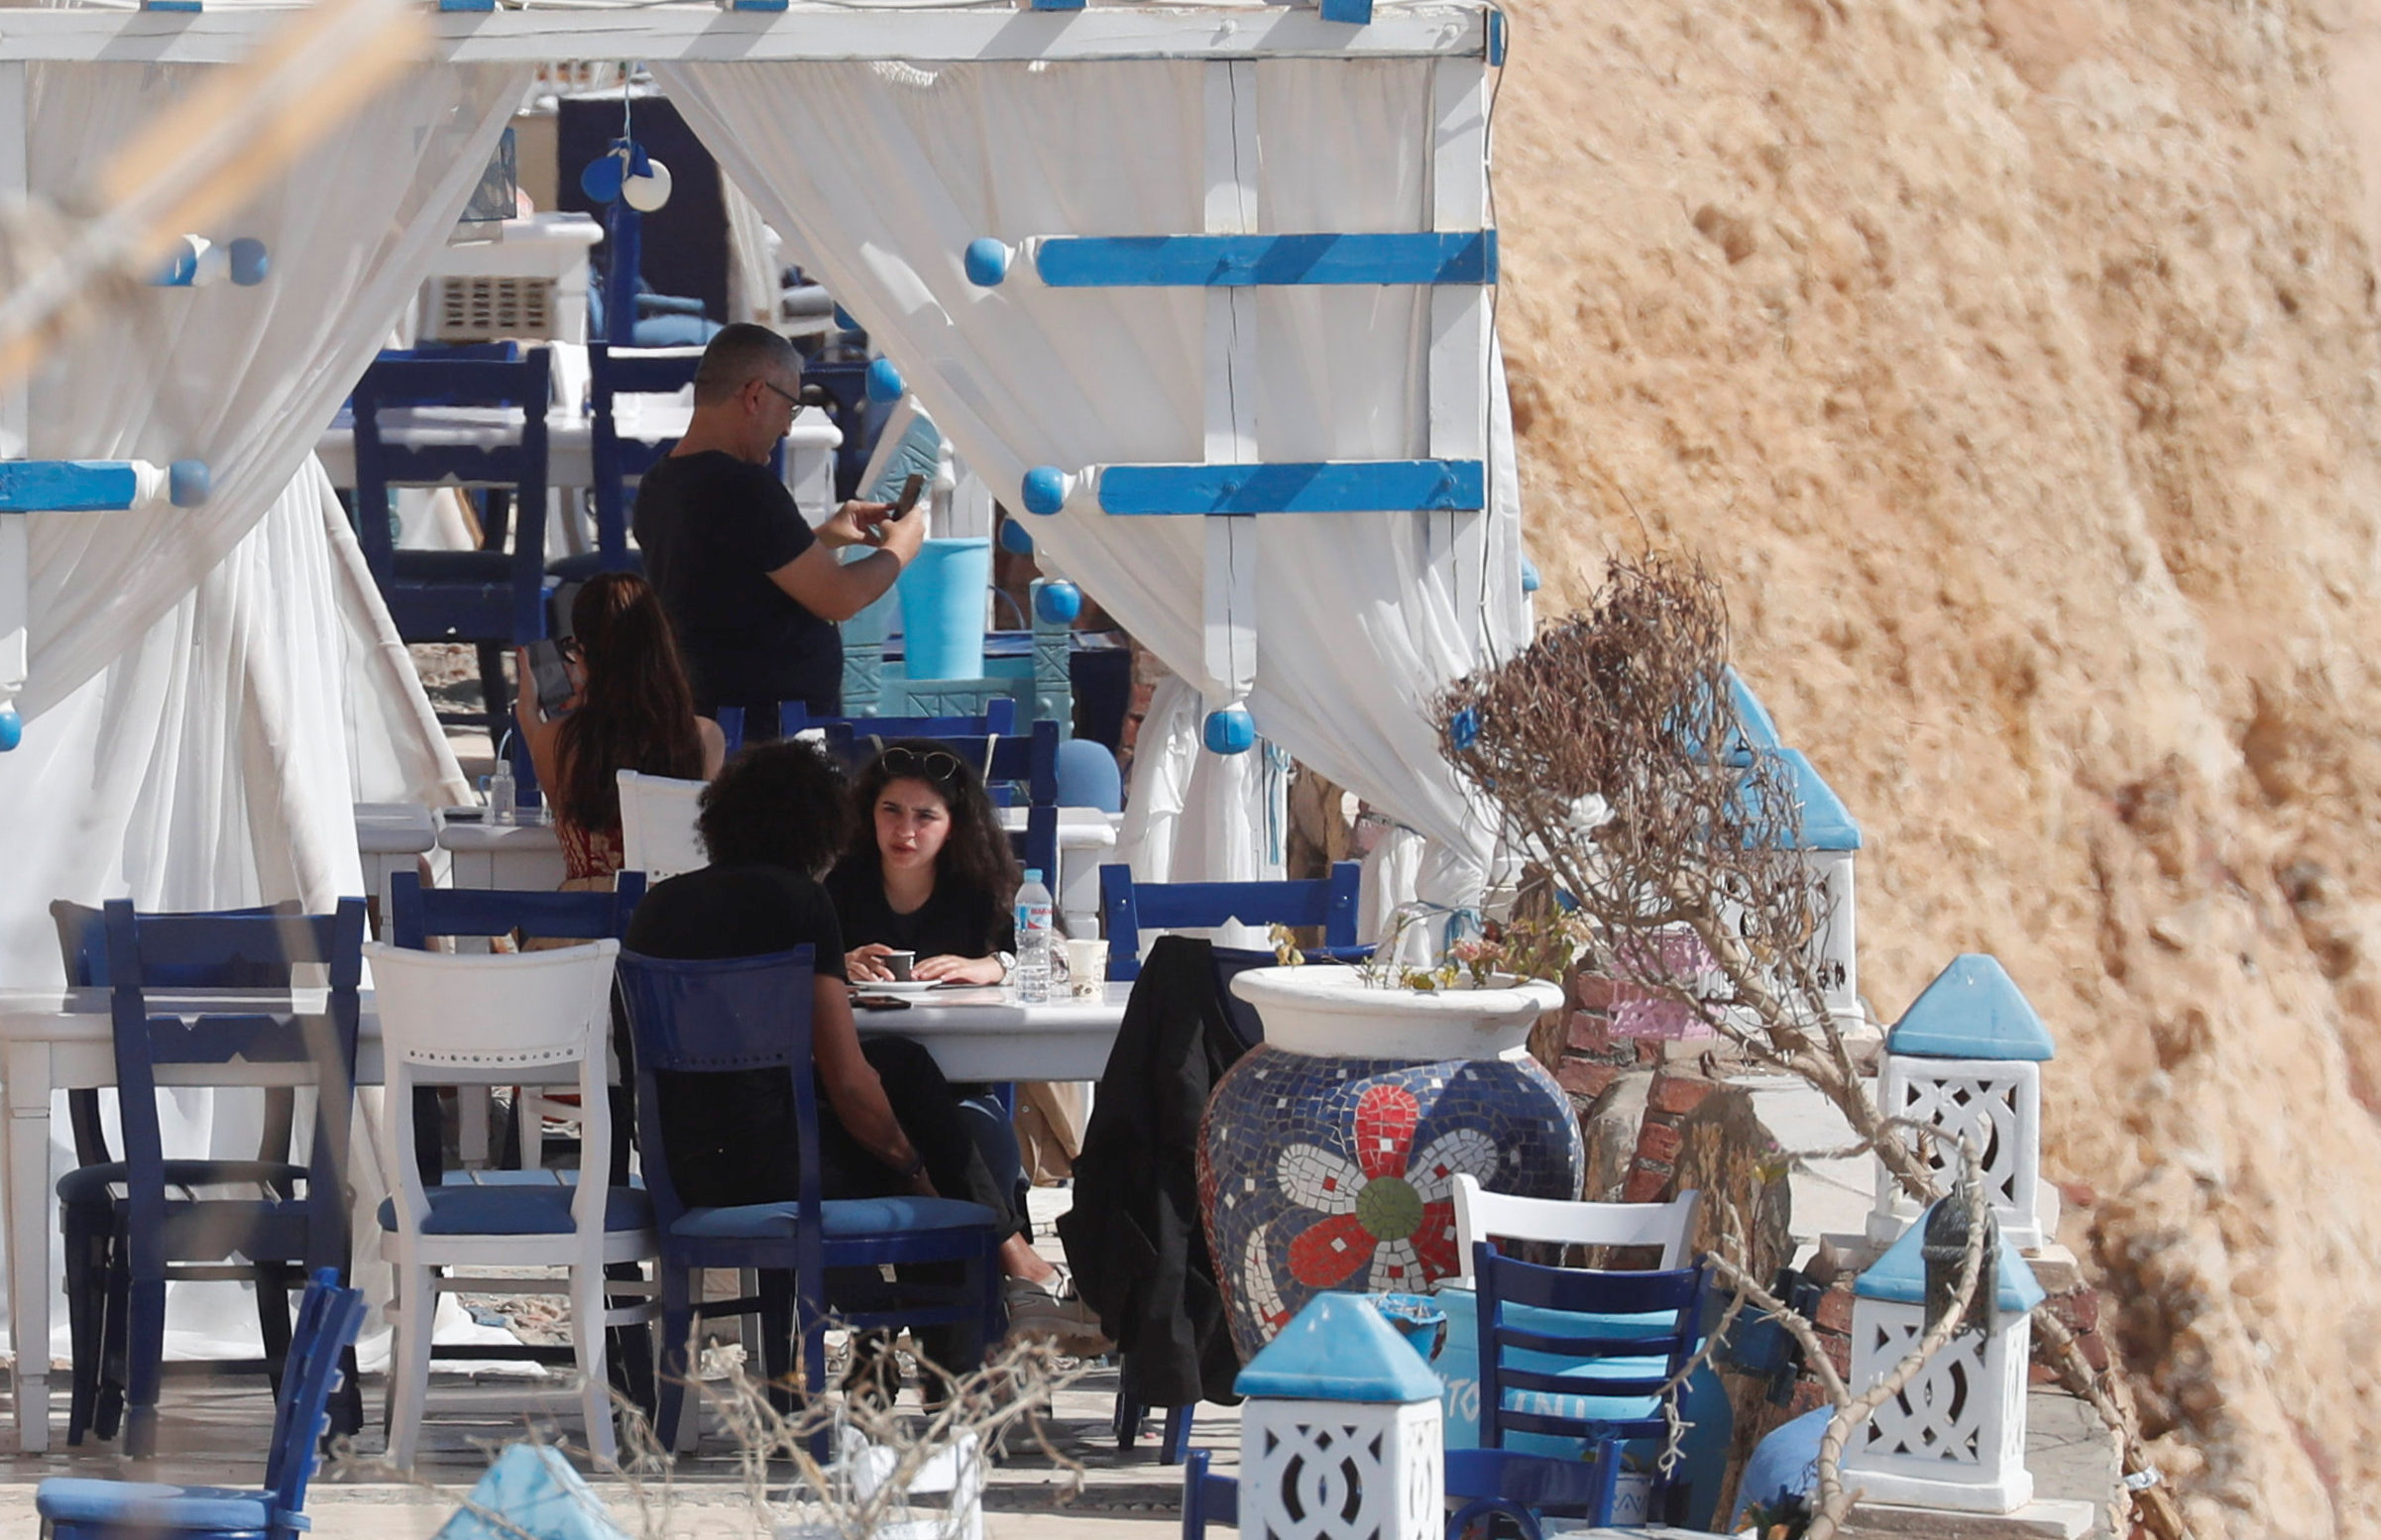 Tourists take lunch on a mountain restaurant amid the coronavirus disease (COVID-19) pandemic in the Red Sea resort of Sharm el-Sheikh, south of Cairo, Egypt February 6, 2021. REUTERS/Amr Abdallah Dalsh